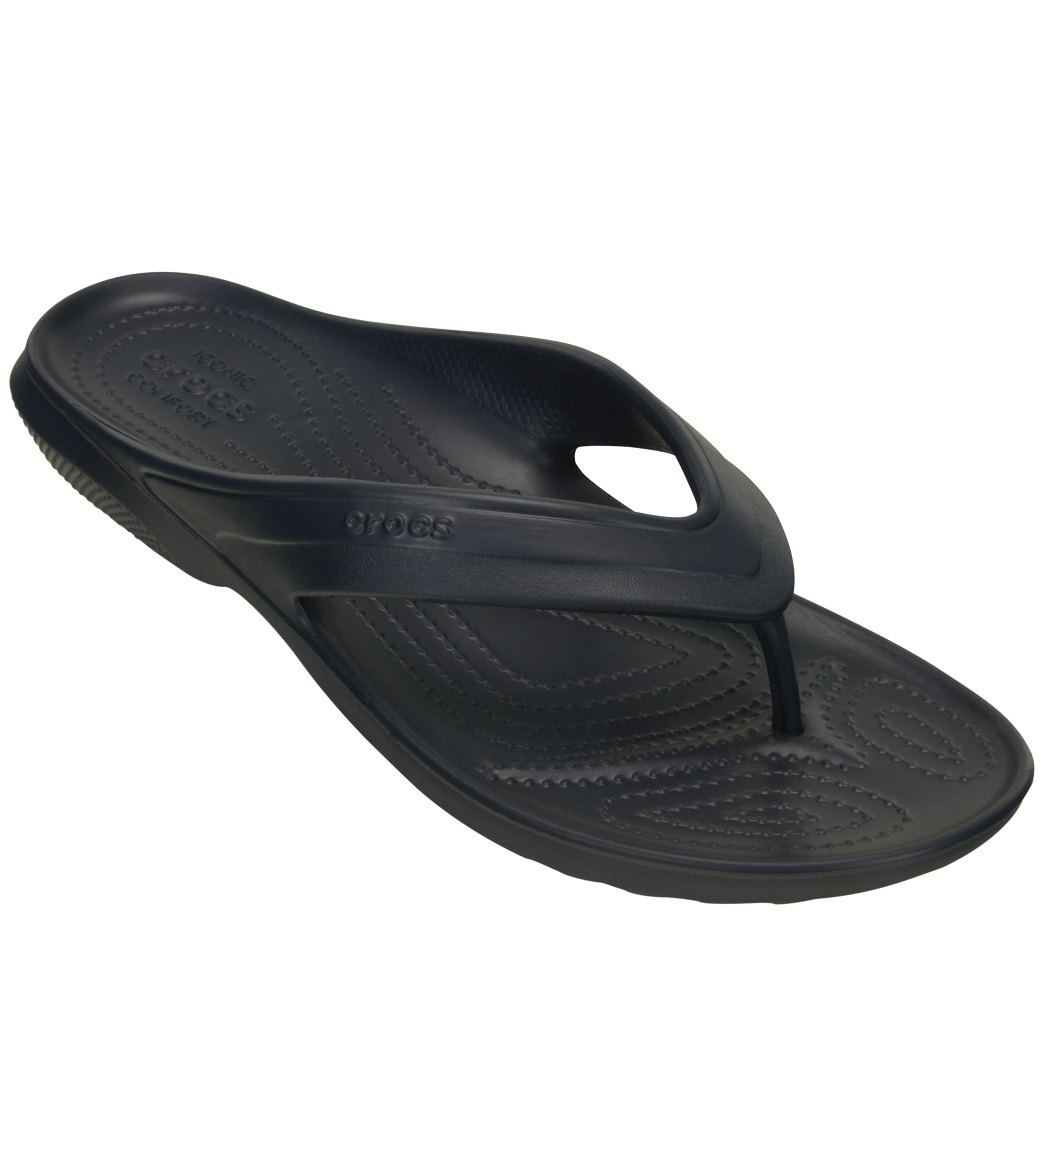 5c27849b3db997 Crocs Unisex Classic Flip Flop at SwimOutlet.com